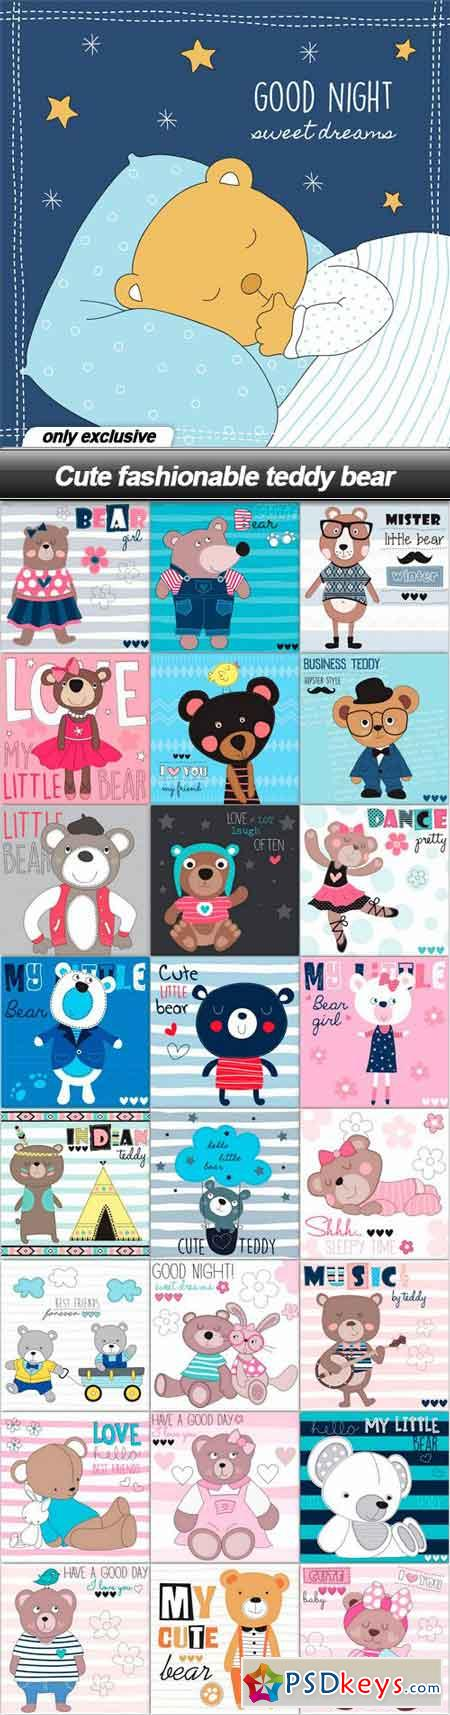 Cute fashionable teddy bear - 25 EPS